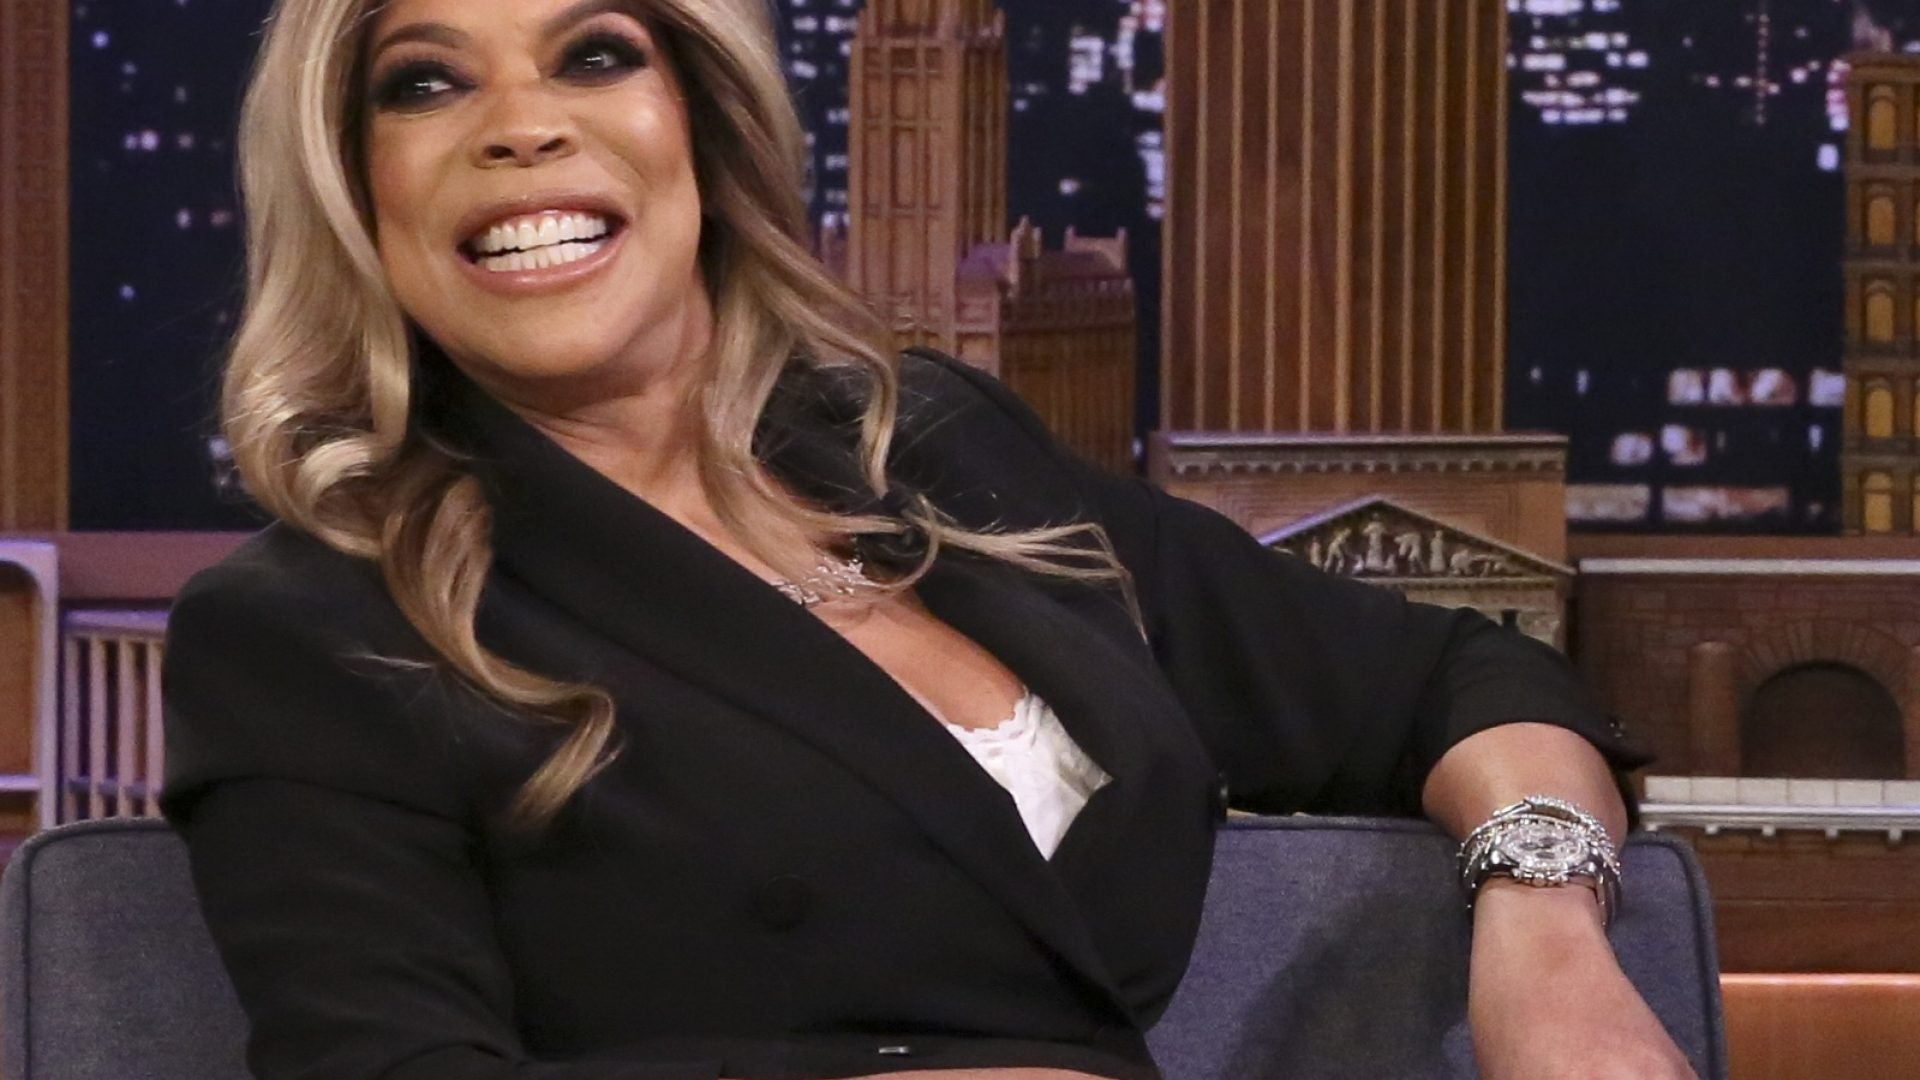 'The Wendy Williams Show's' Season 12 Will Return September 21